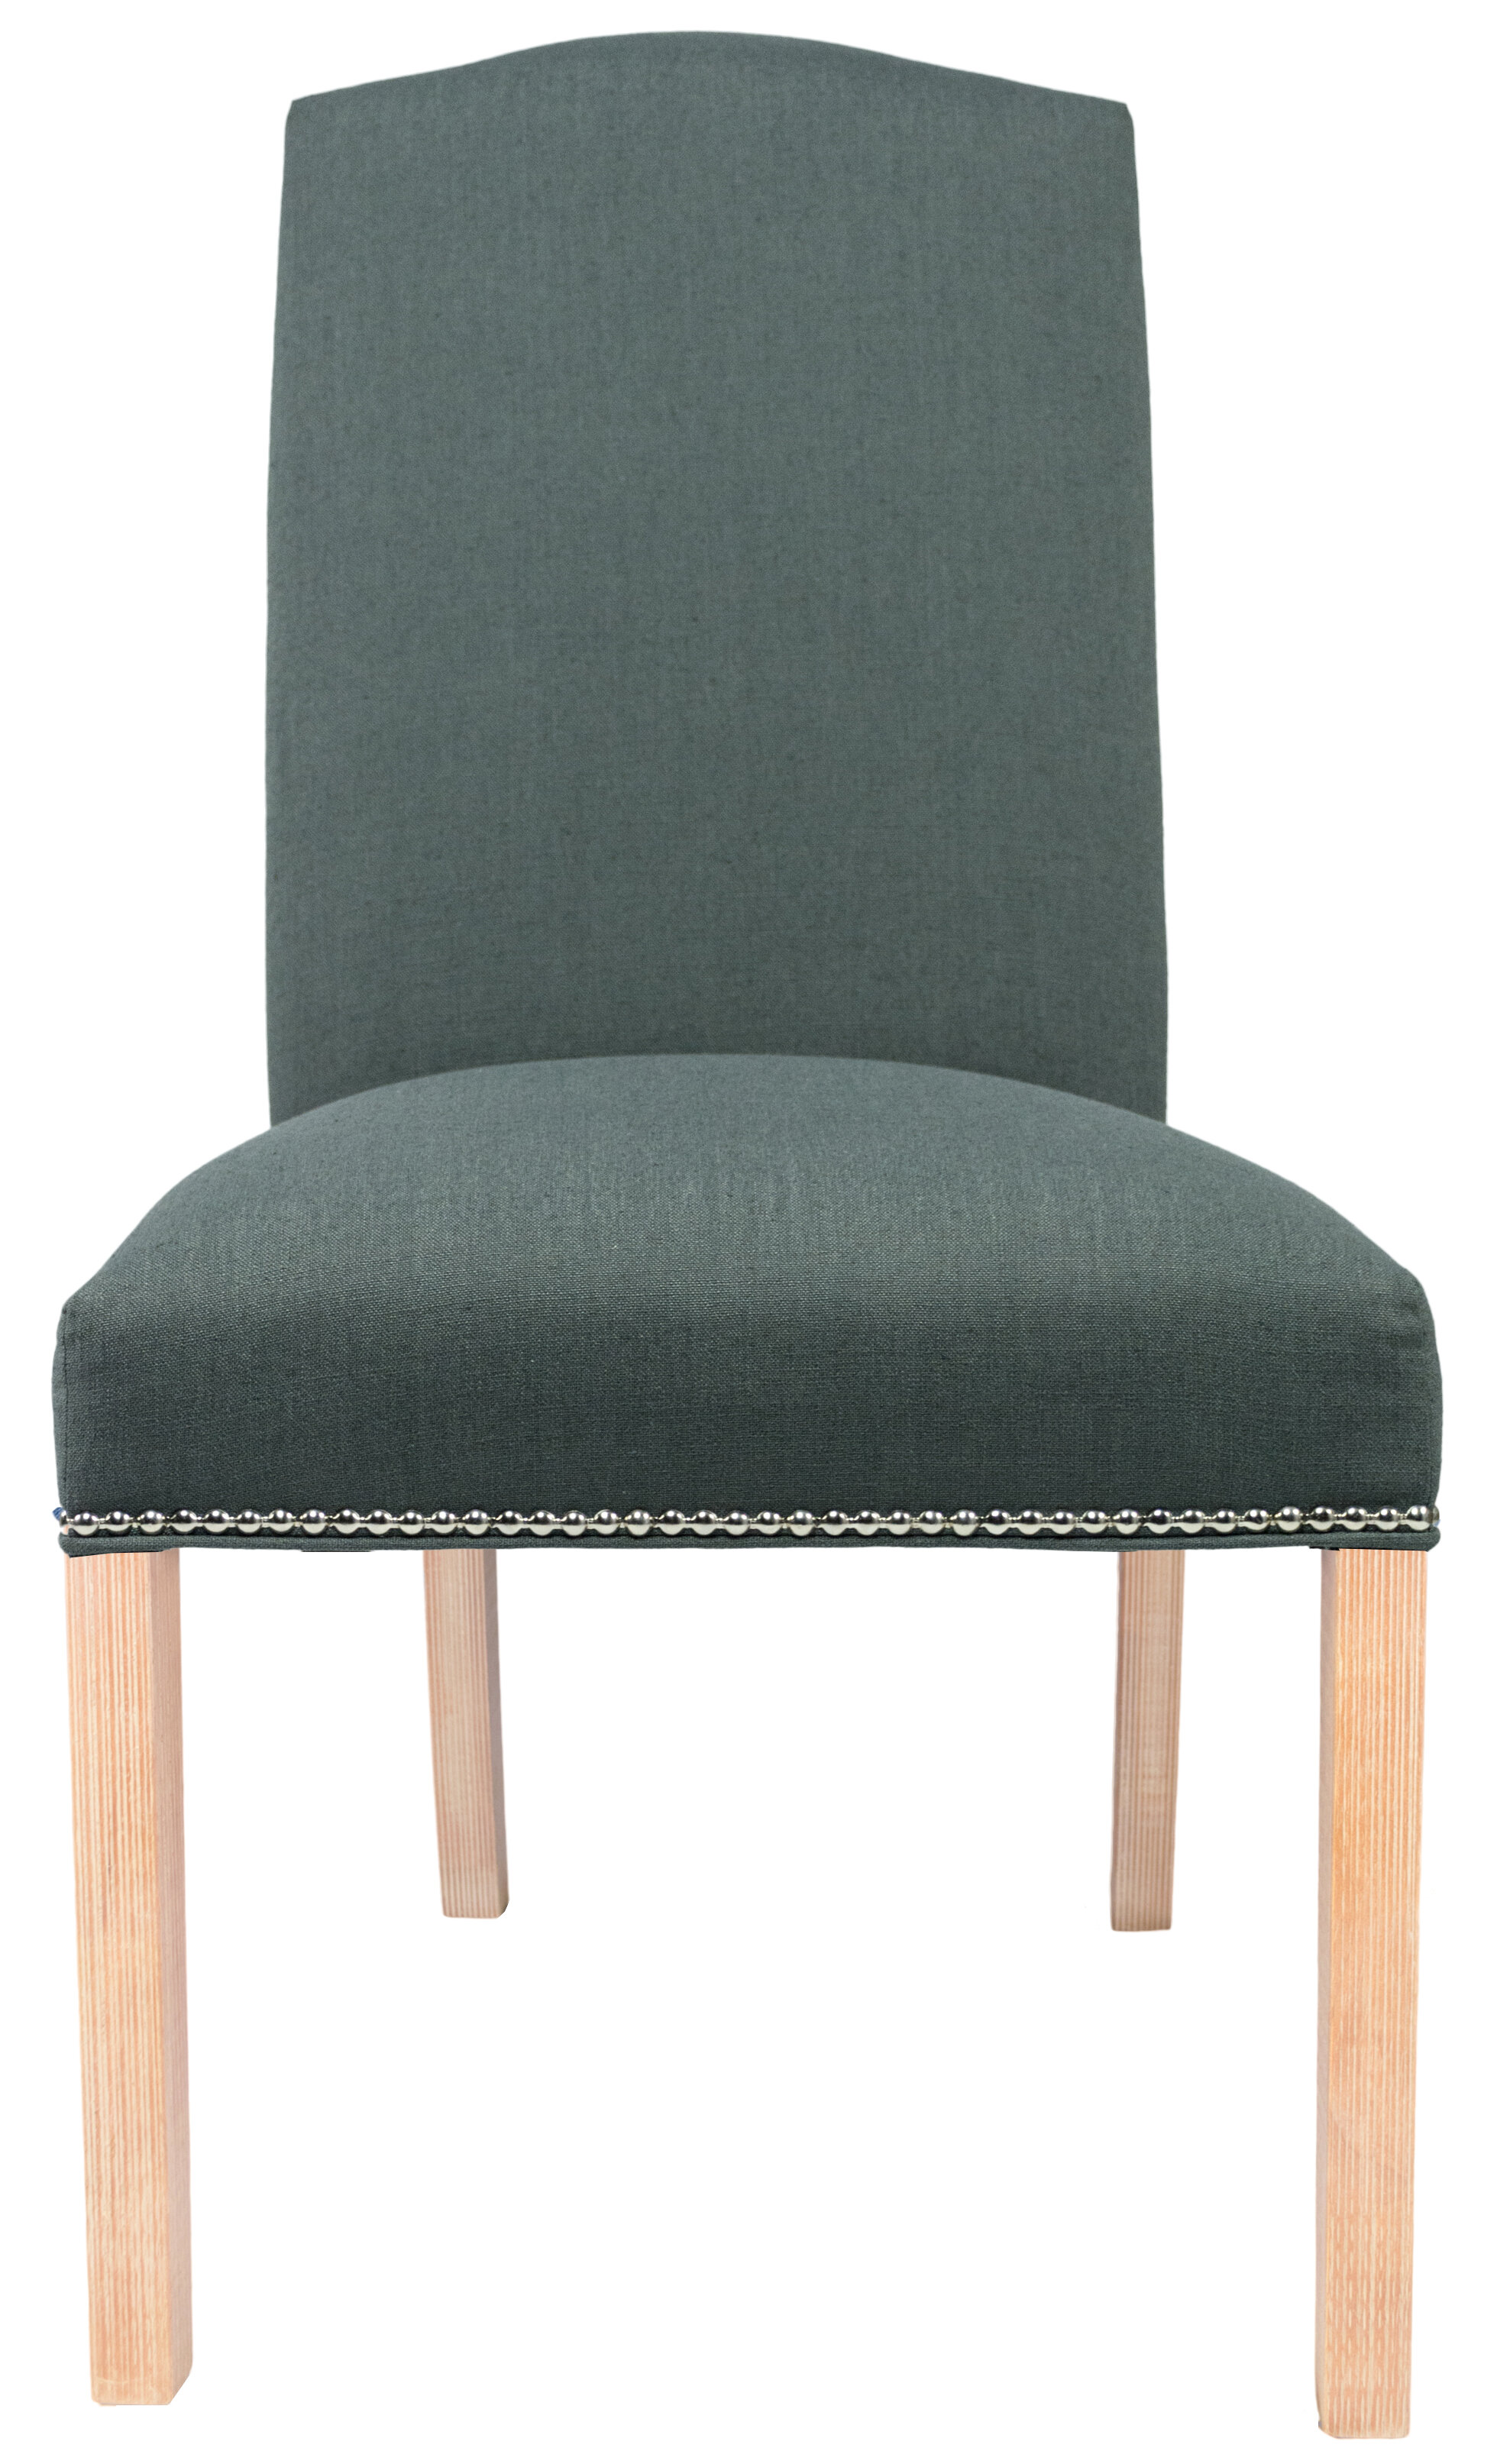 Parsons Style Chairs - Summervilleaugusta.org